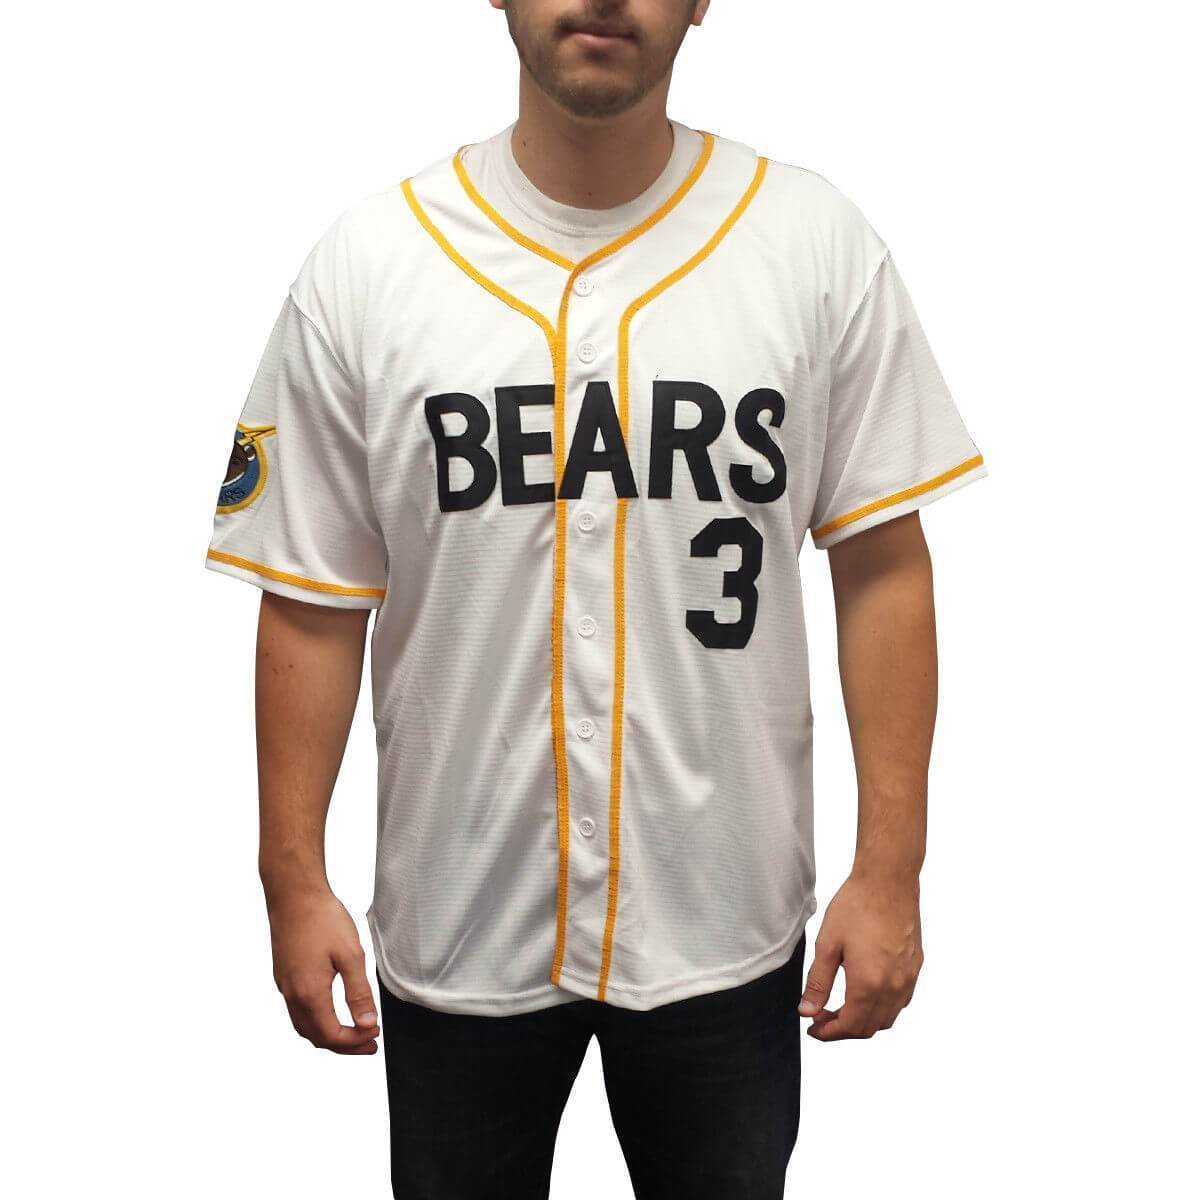 Bad News Bears Baseball Jerseys - Jersey Champs